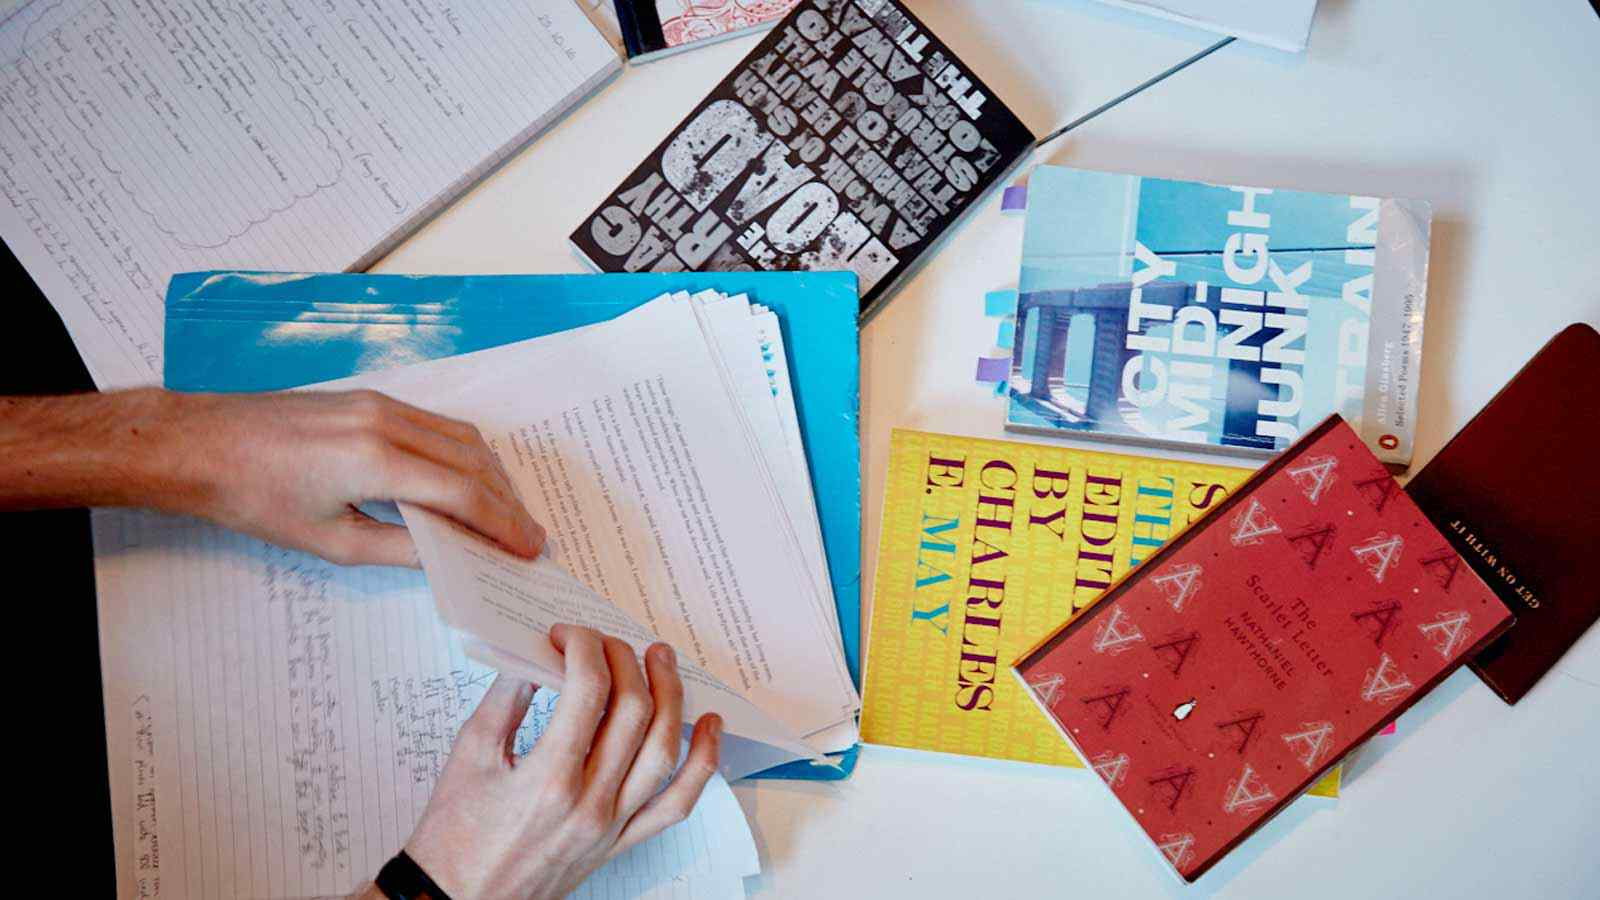 English literature texts and student notes on table